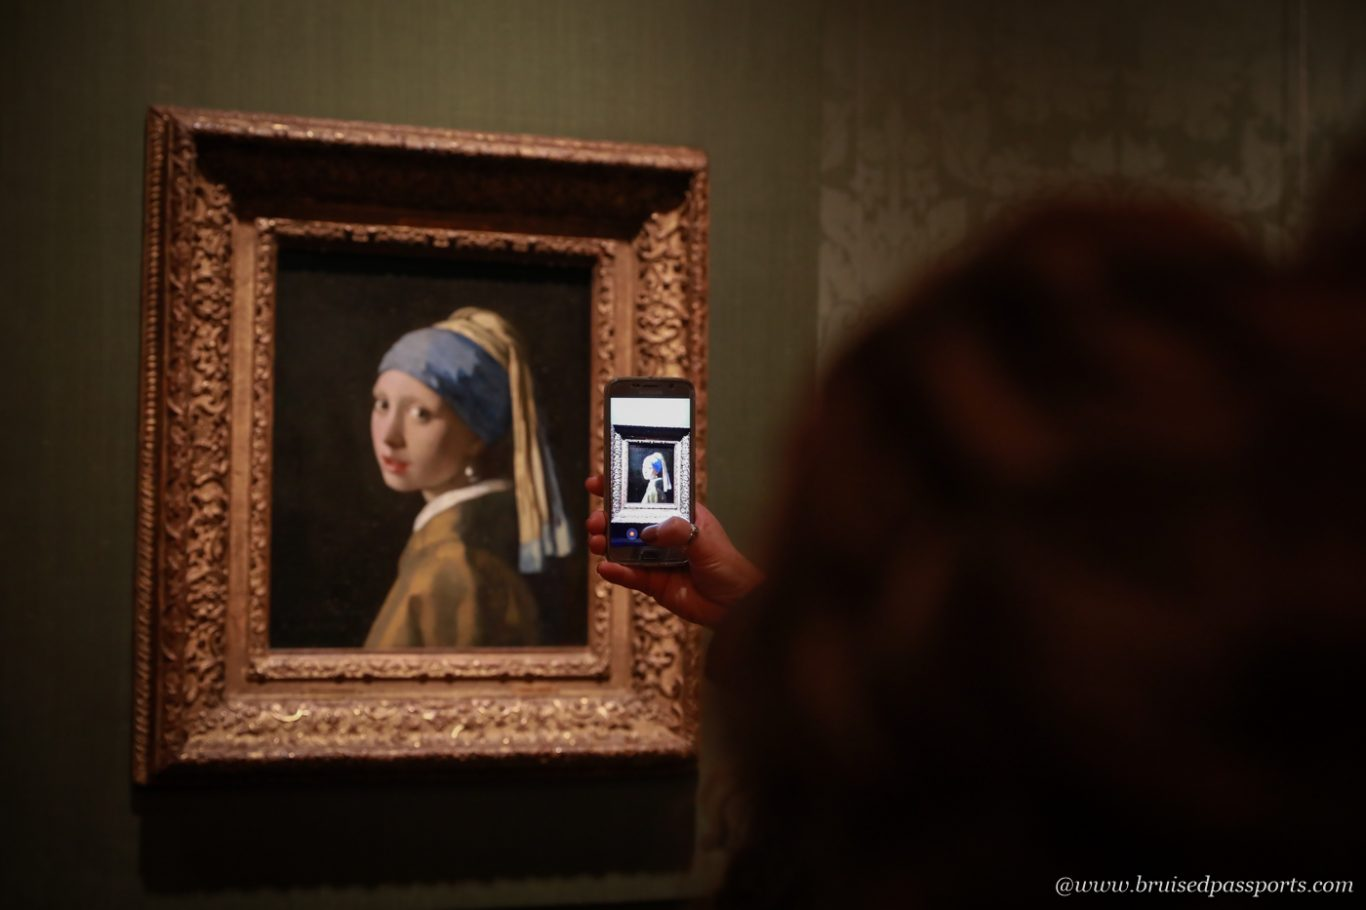 Girl with pearl earrings painting at Mauritshuis The Hague